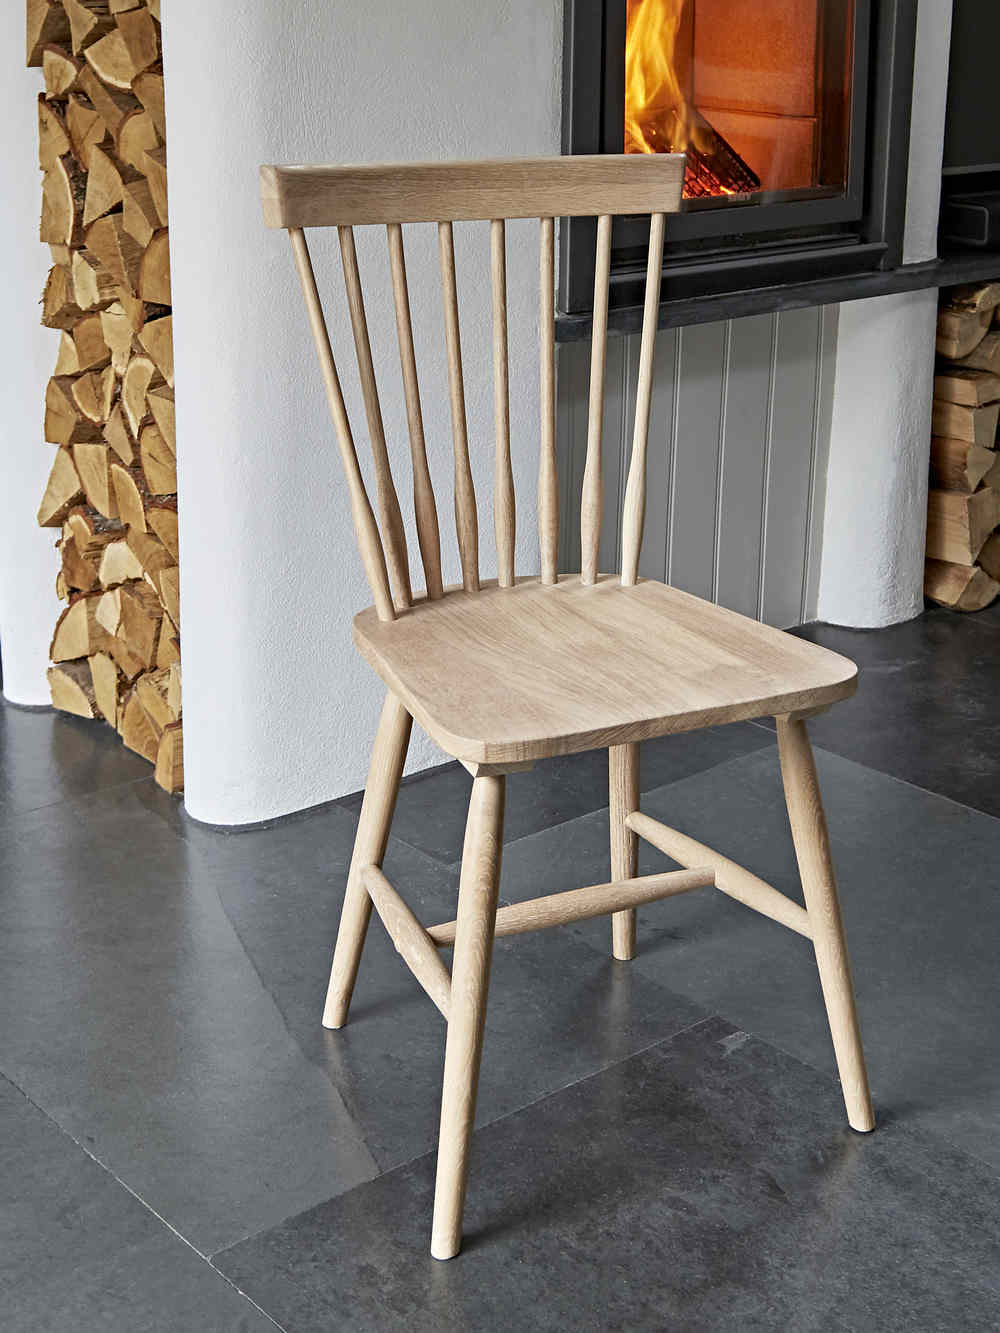 At Home Kitchen Chairs.Blom Dining Chair Oak